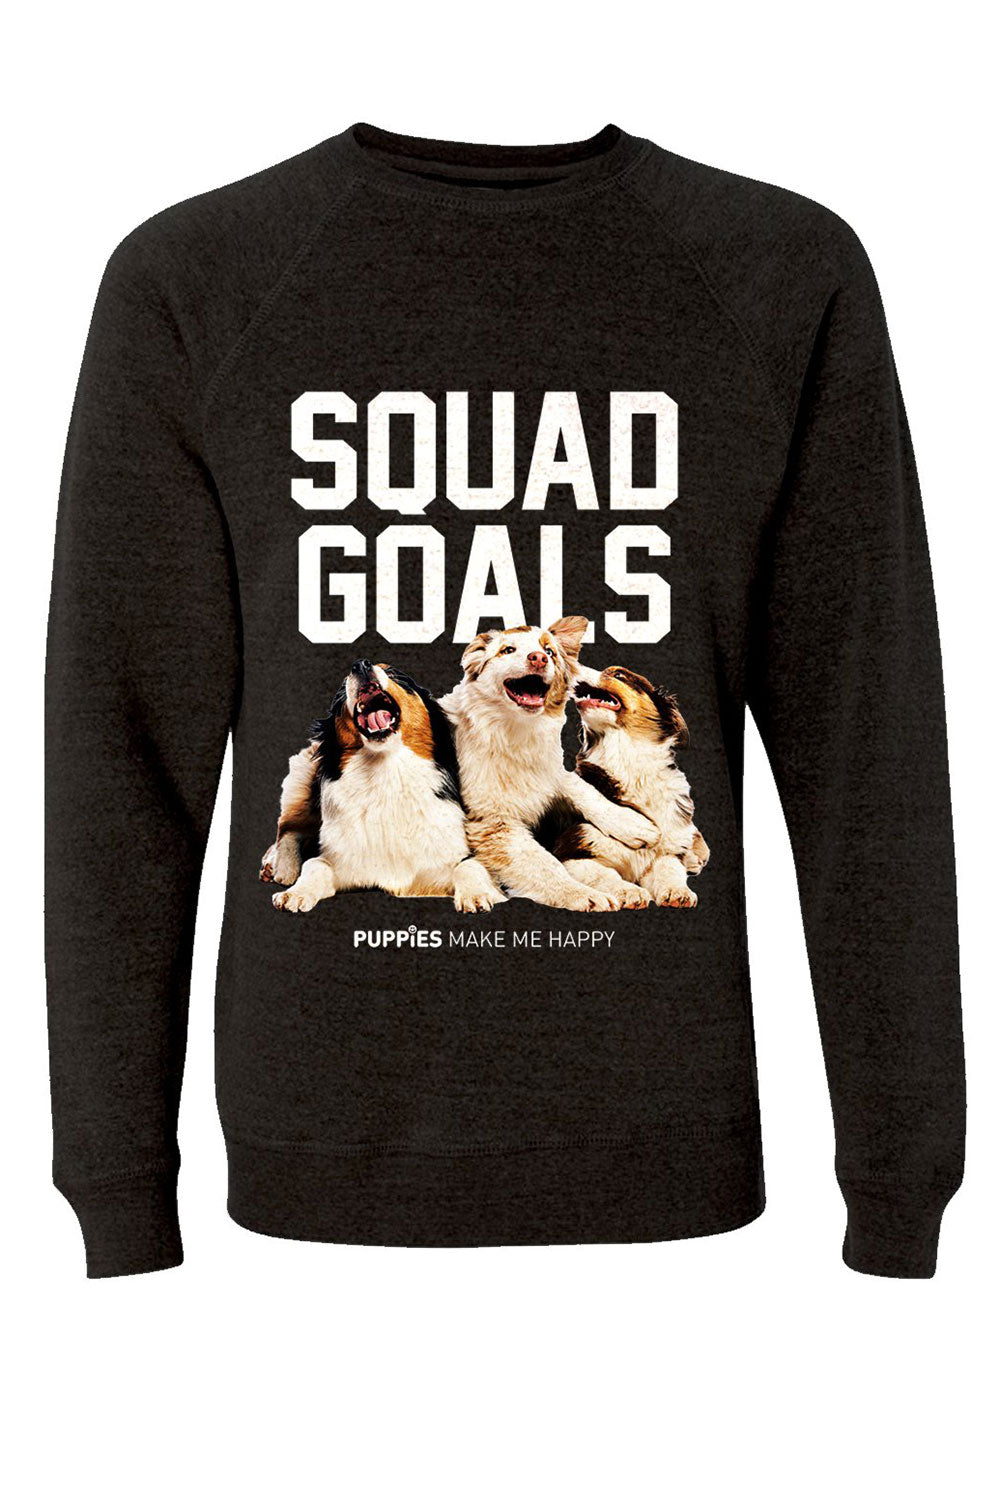 Puppies Make Me Happy Squad Goals Sweatshirt - Sculptique